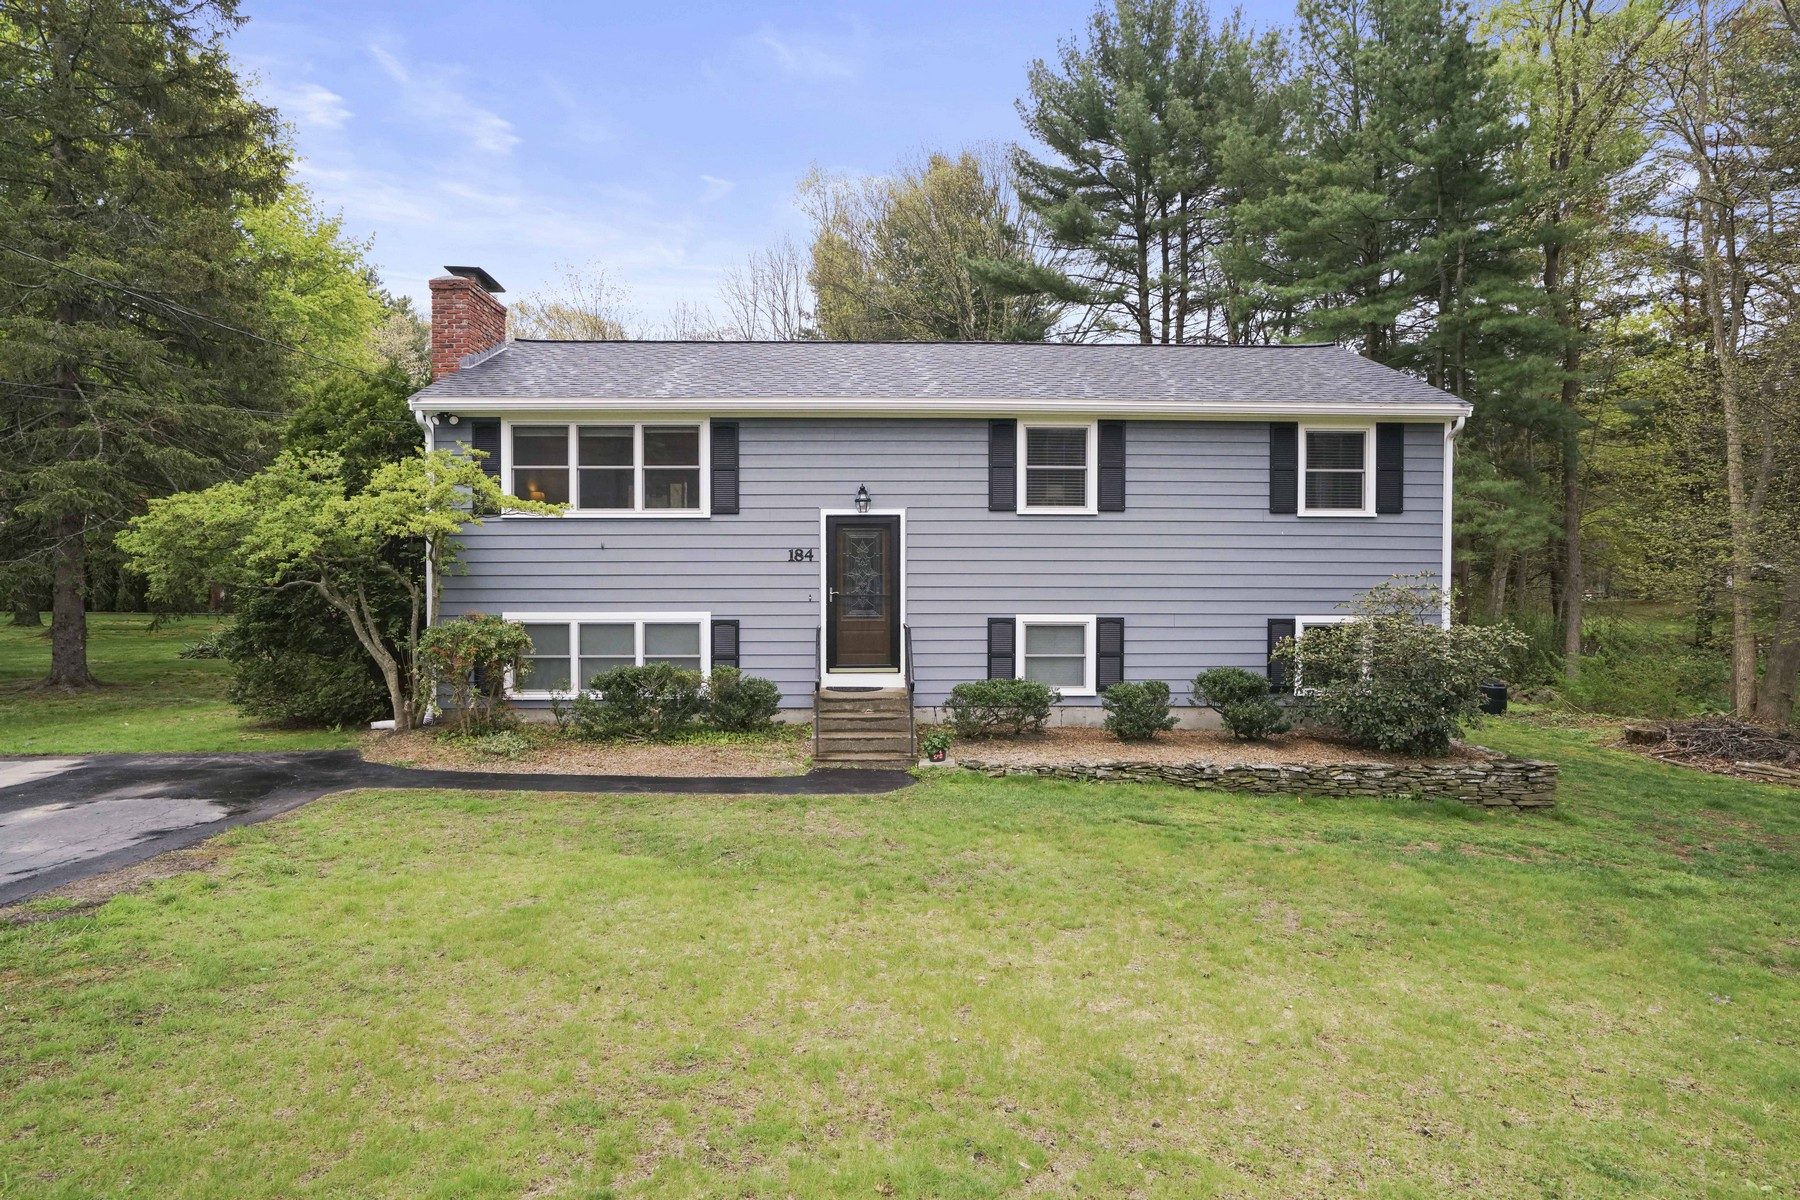 Single Family Homes for Active at Charming Split Level Home 184 Woodland Road Southborough, Massachusetts 01772 United States